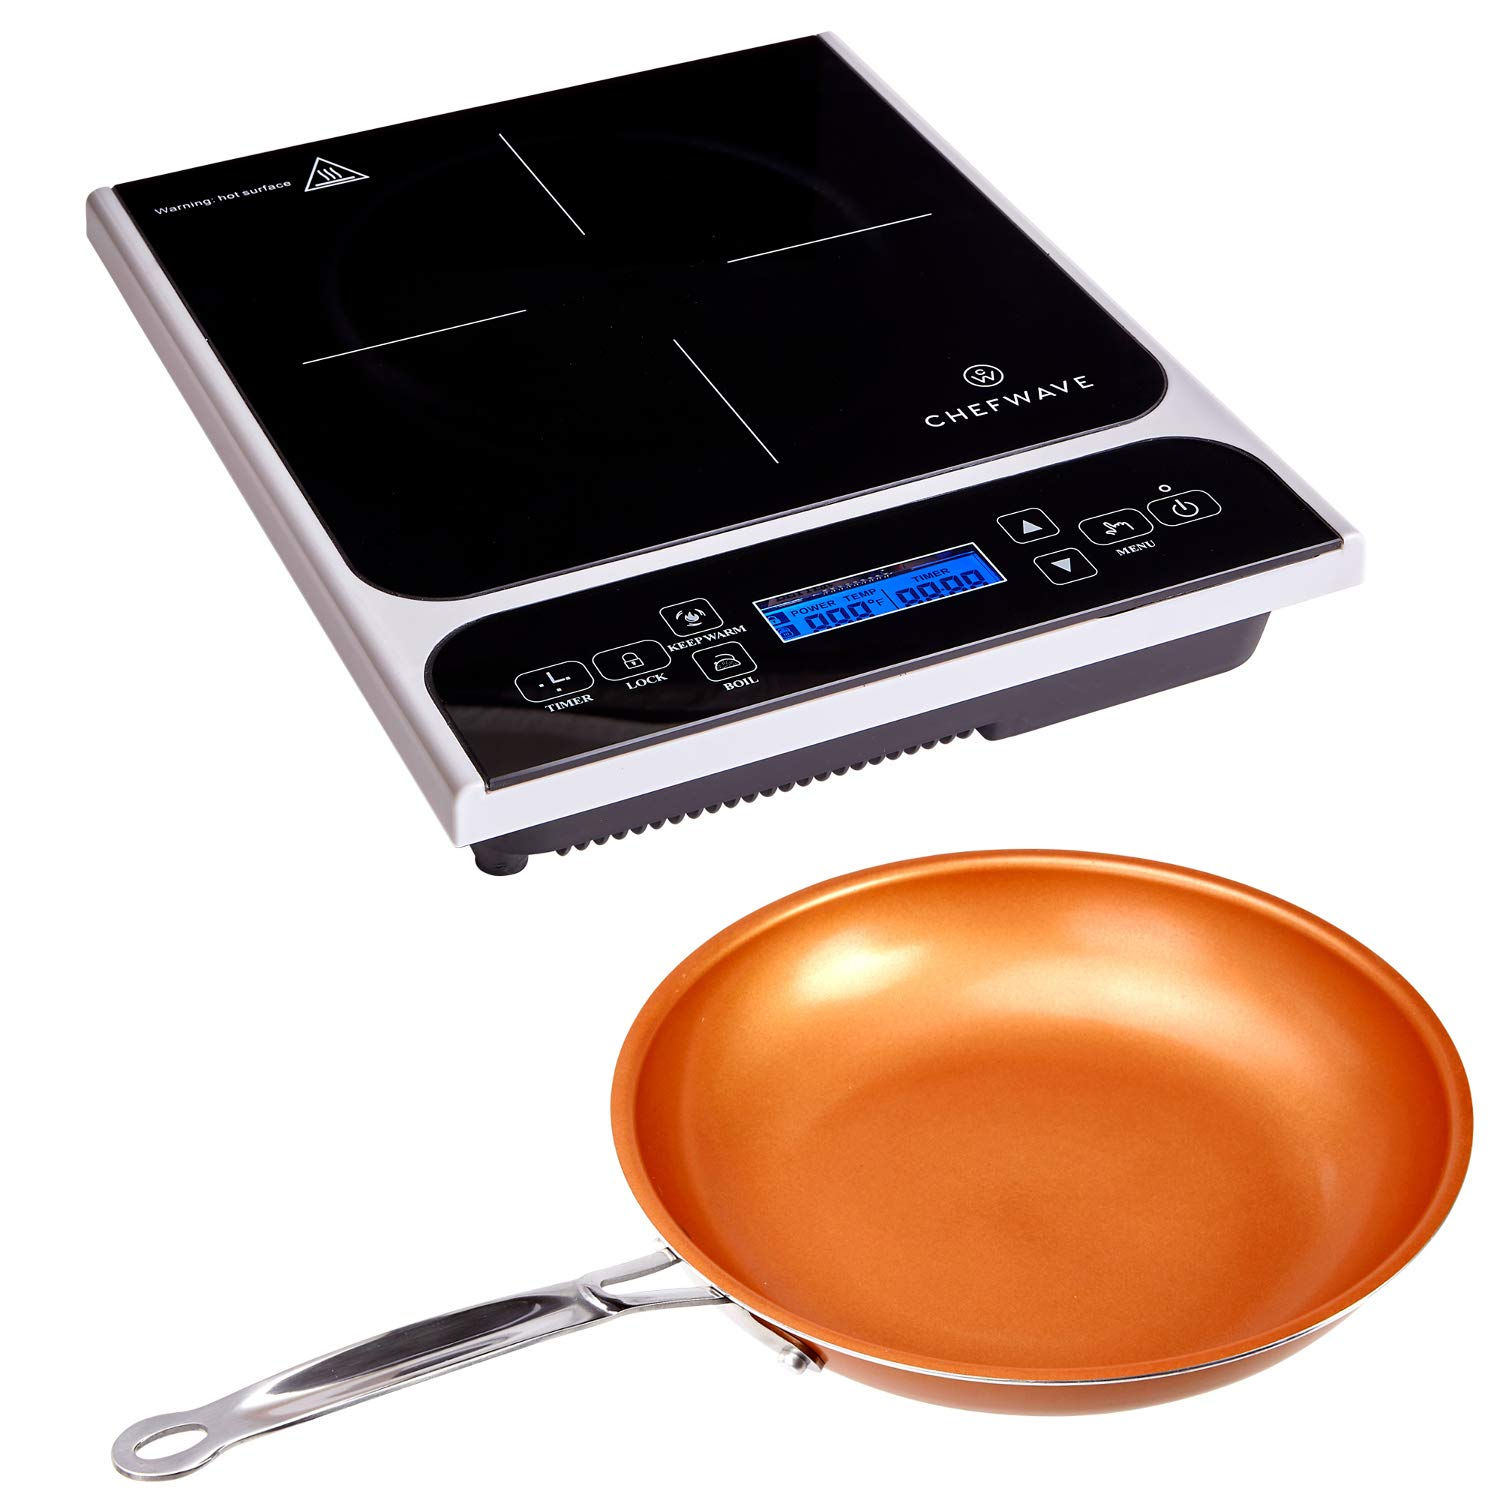 "ChefWave CW-IC01 1800W Portable Induction Countertop Burner - Bonus 10"" Copper Frying Pan - 20 Power/Temp Settings Digital LCD Touch Kitchen Cooktop Electric Cooker - Energy Efficient, Safety Lock"